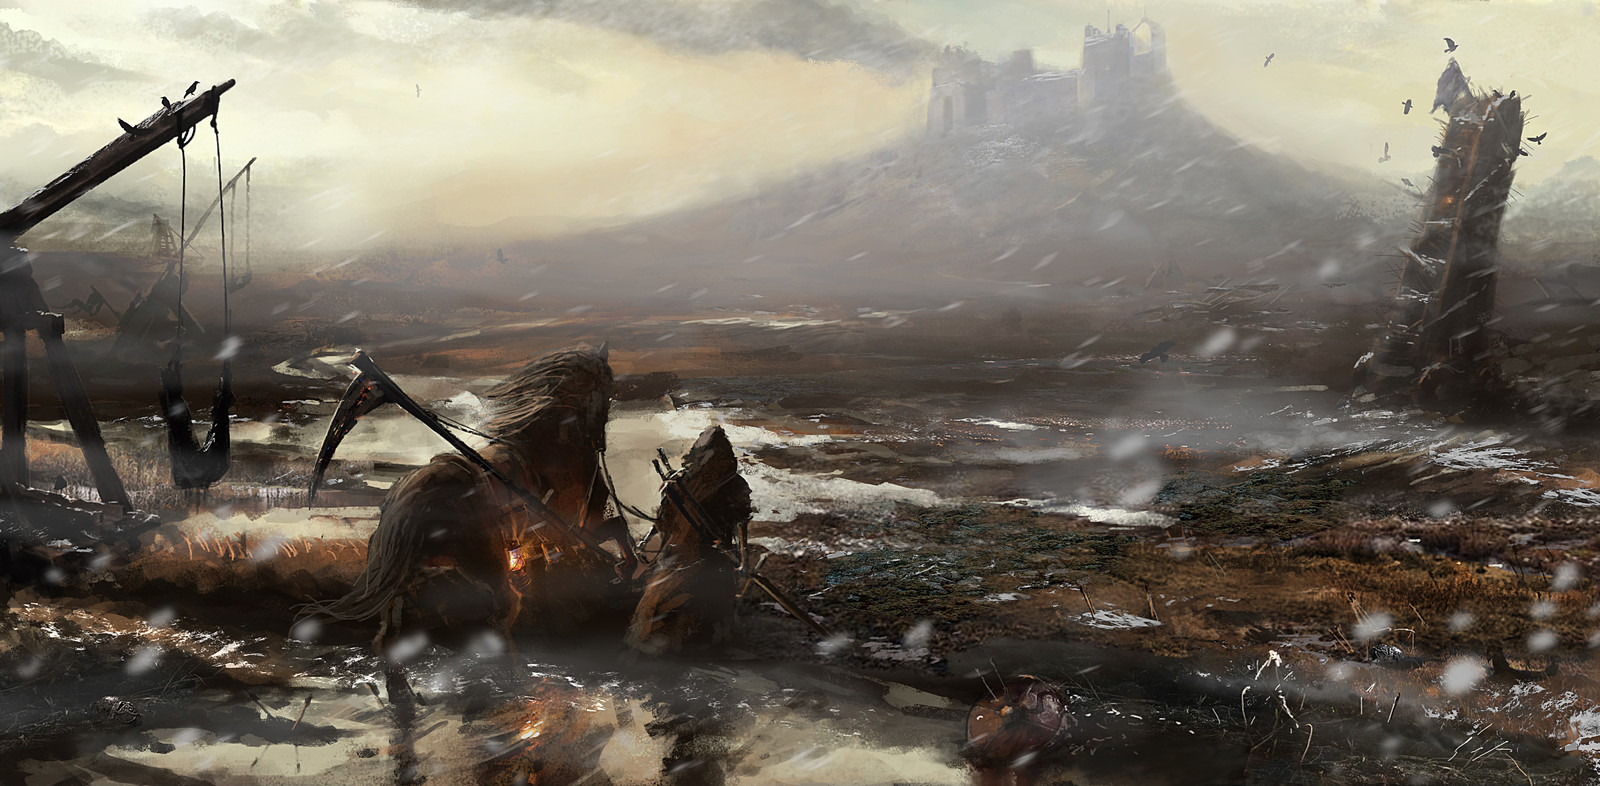 After the battle (Morning)